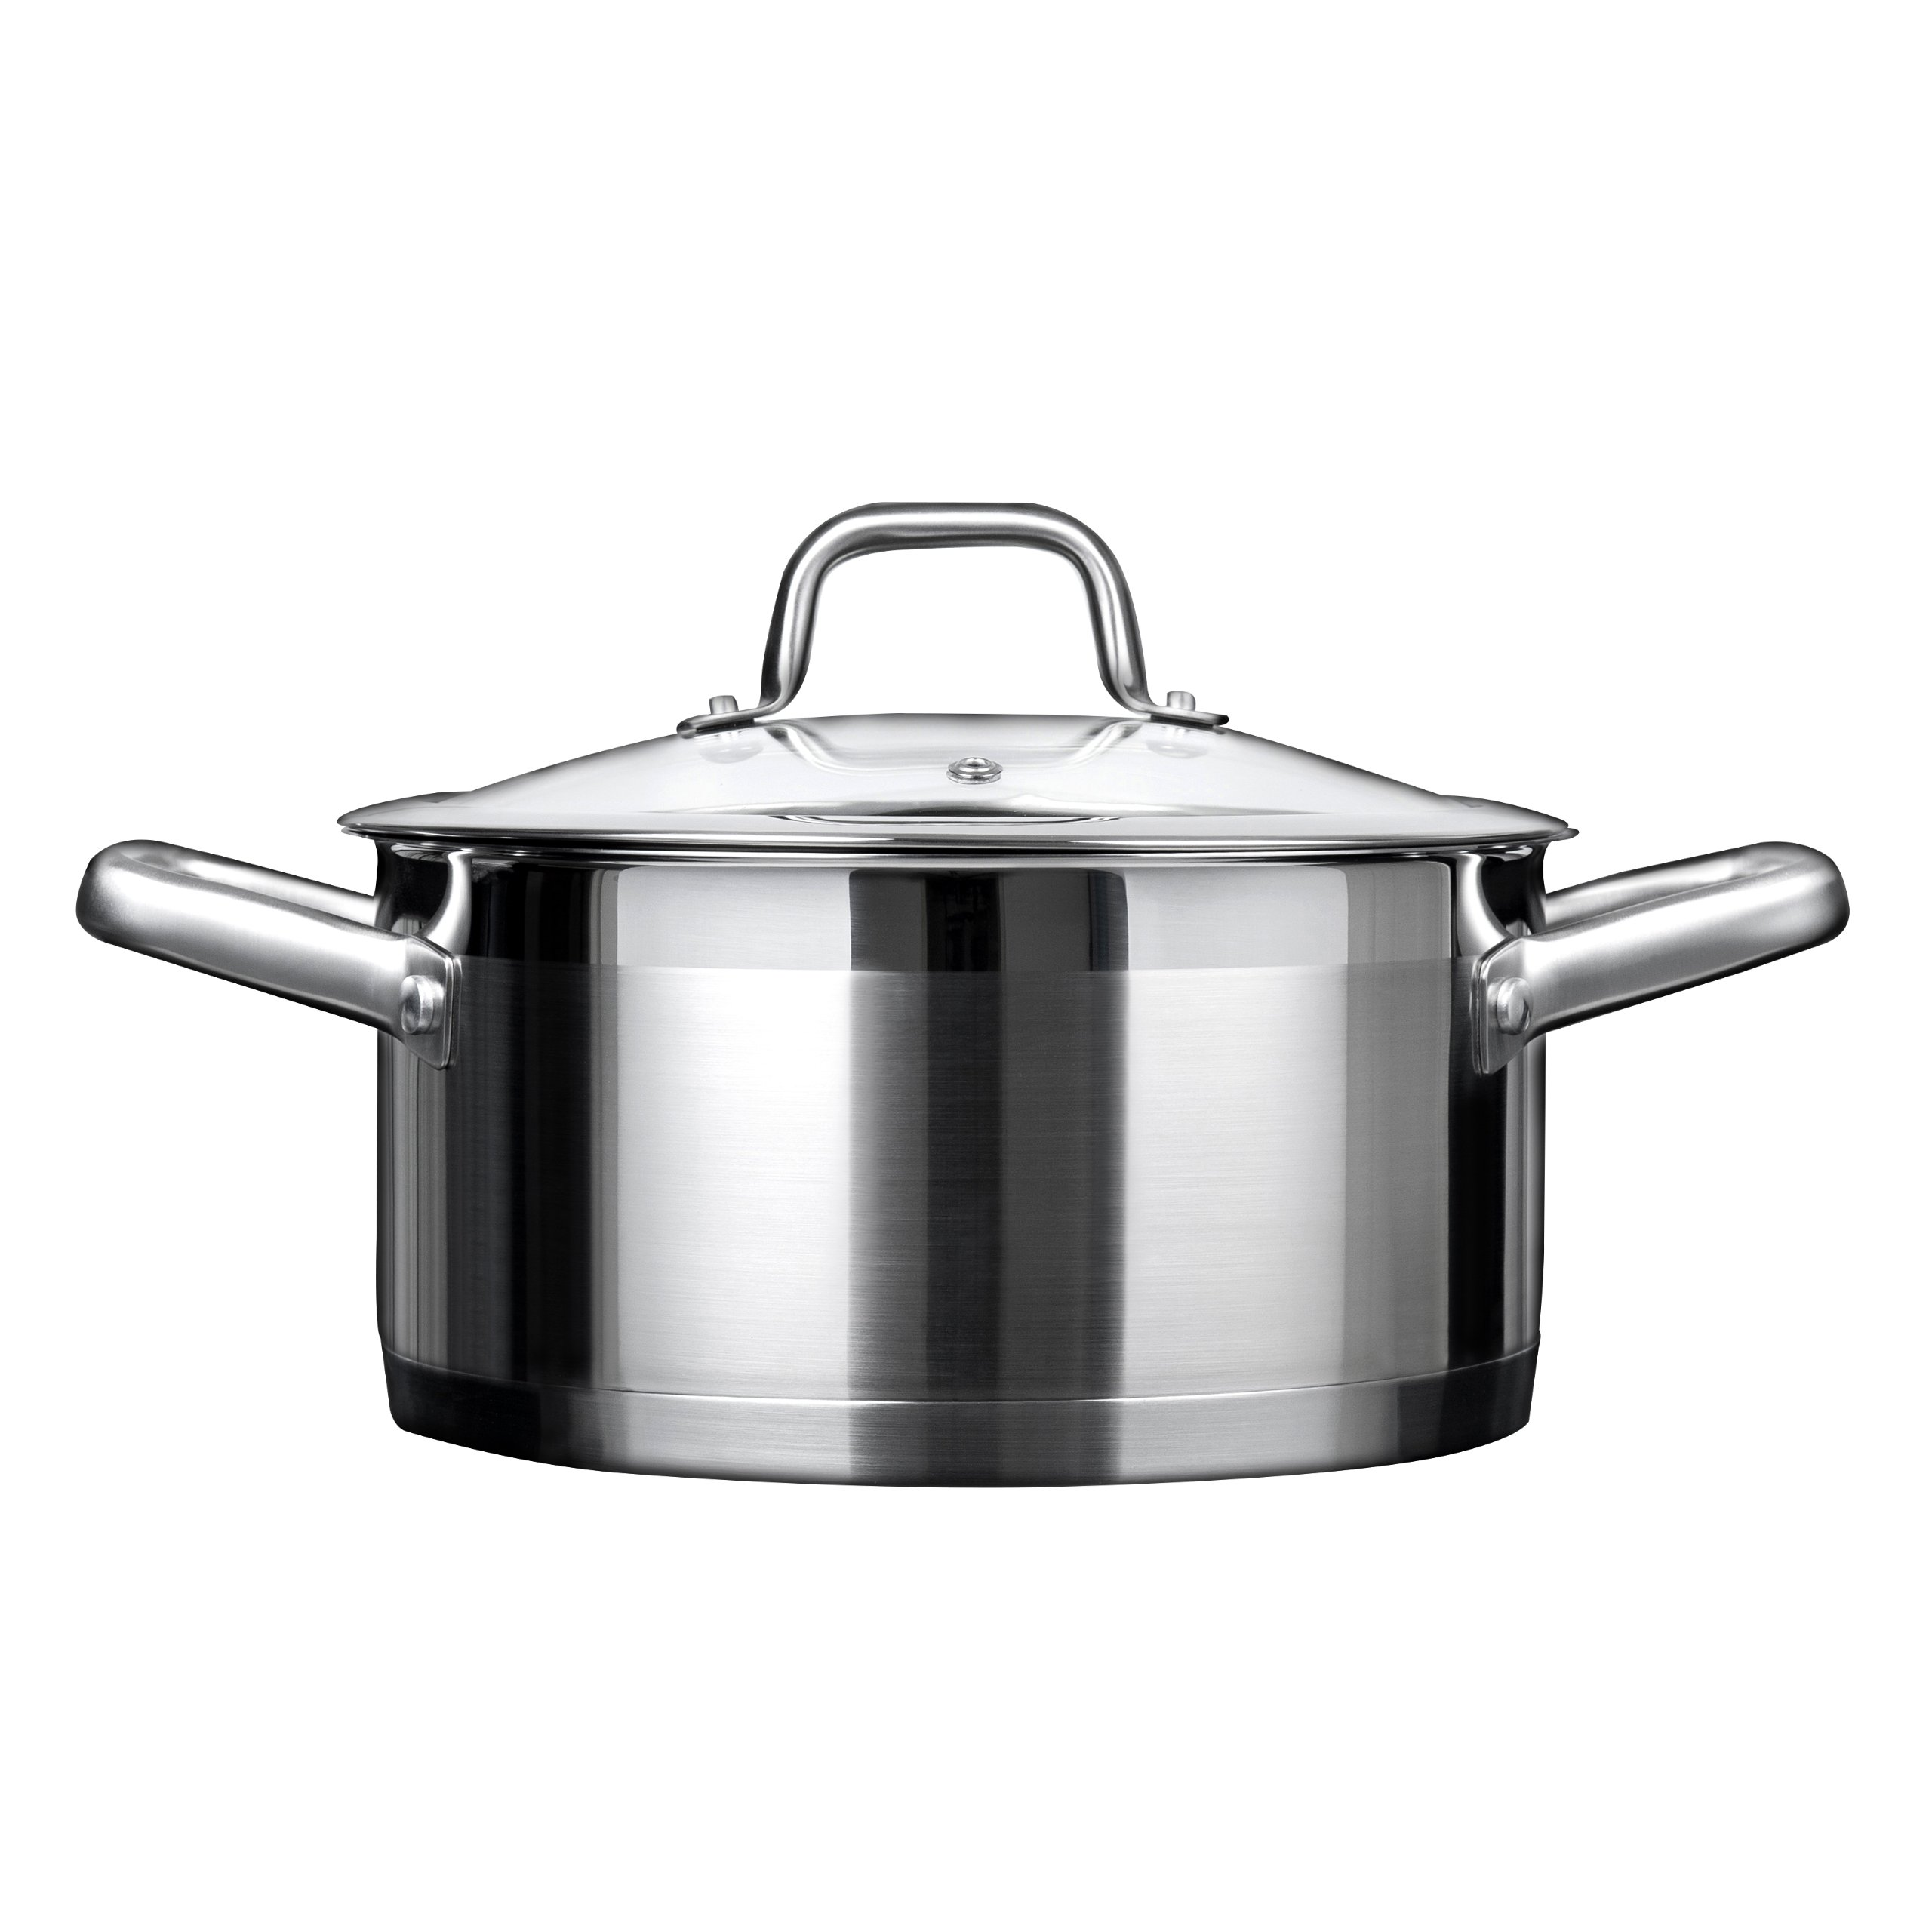 Duxtop Professional Stainless steel Cookware Induction Ready Impact-bonded Technology (4.2Qt Casserole) by Duxtop (Image #1)